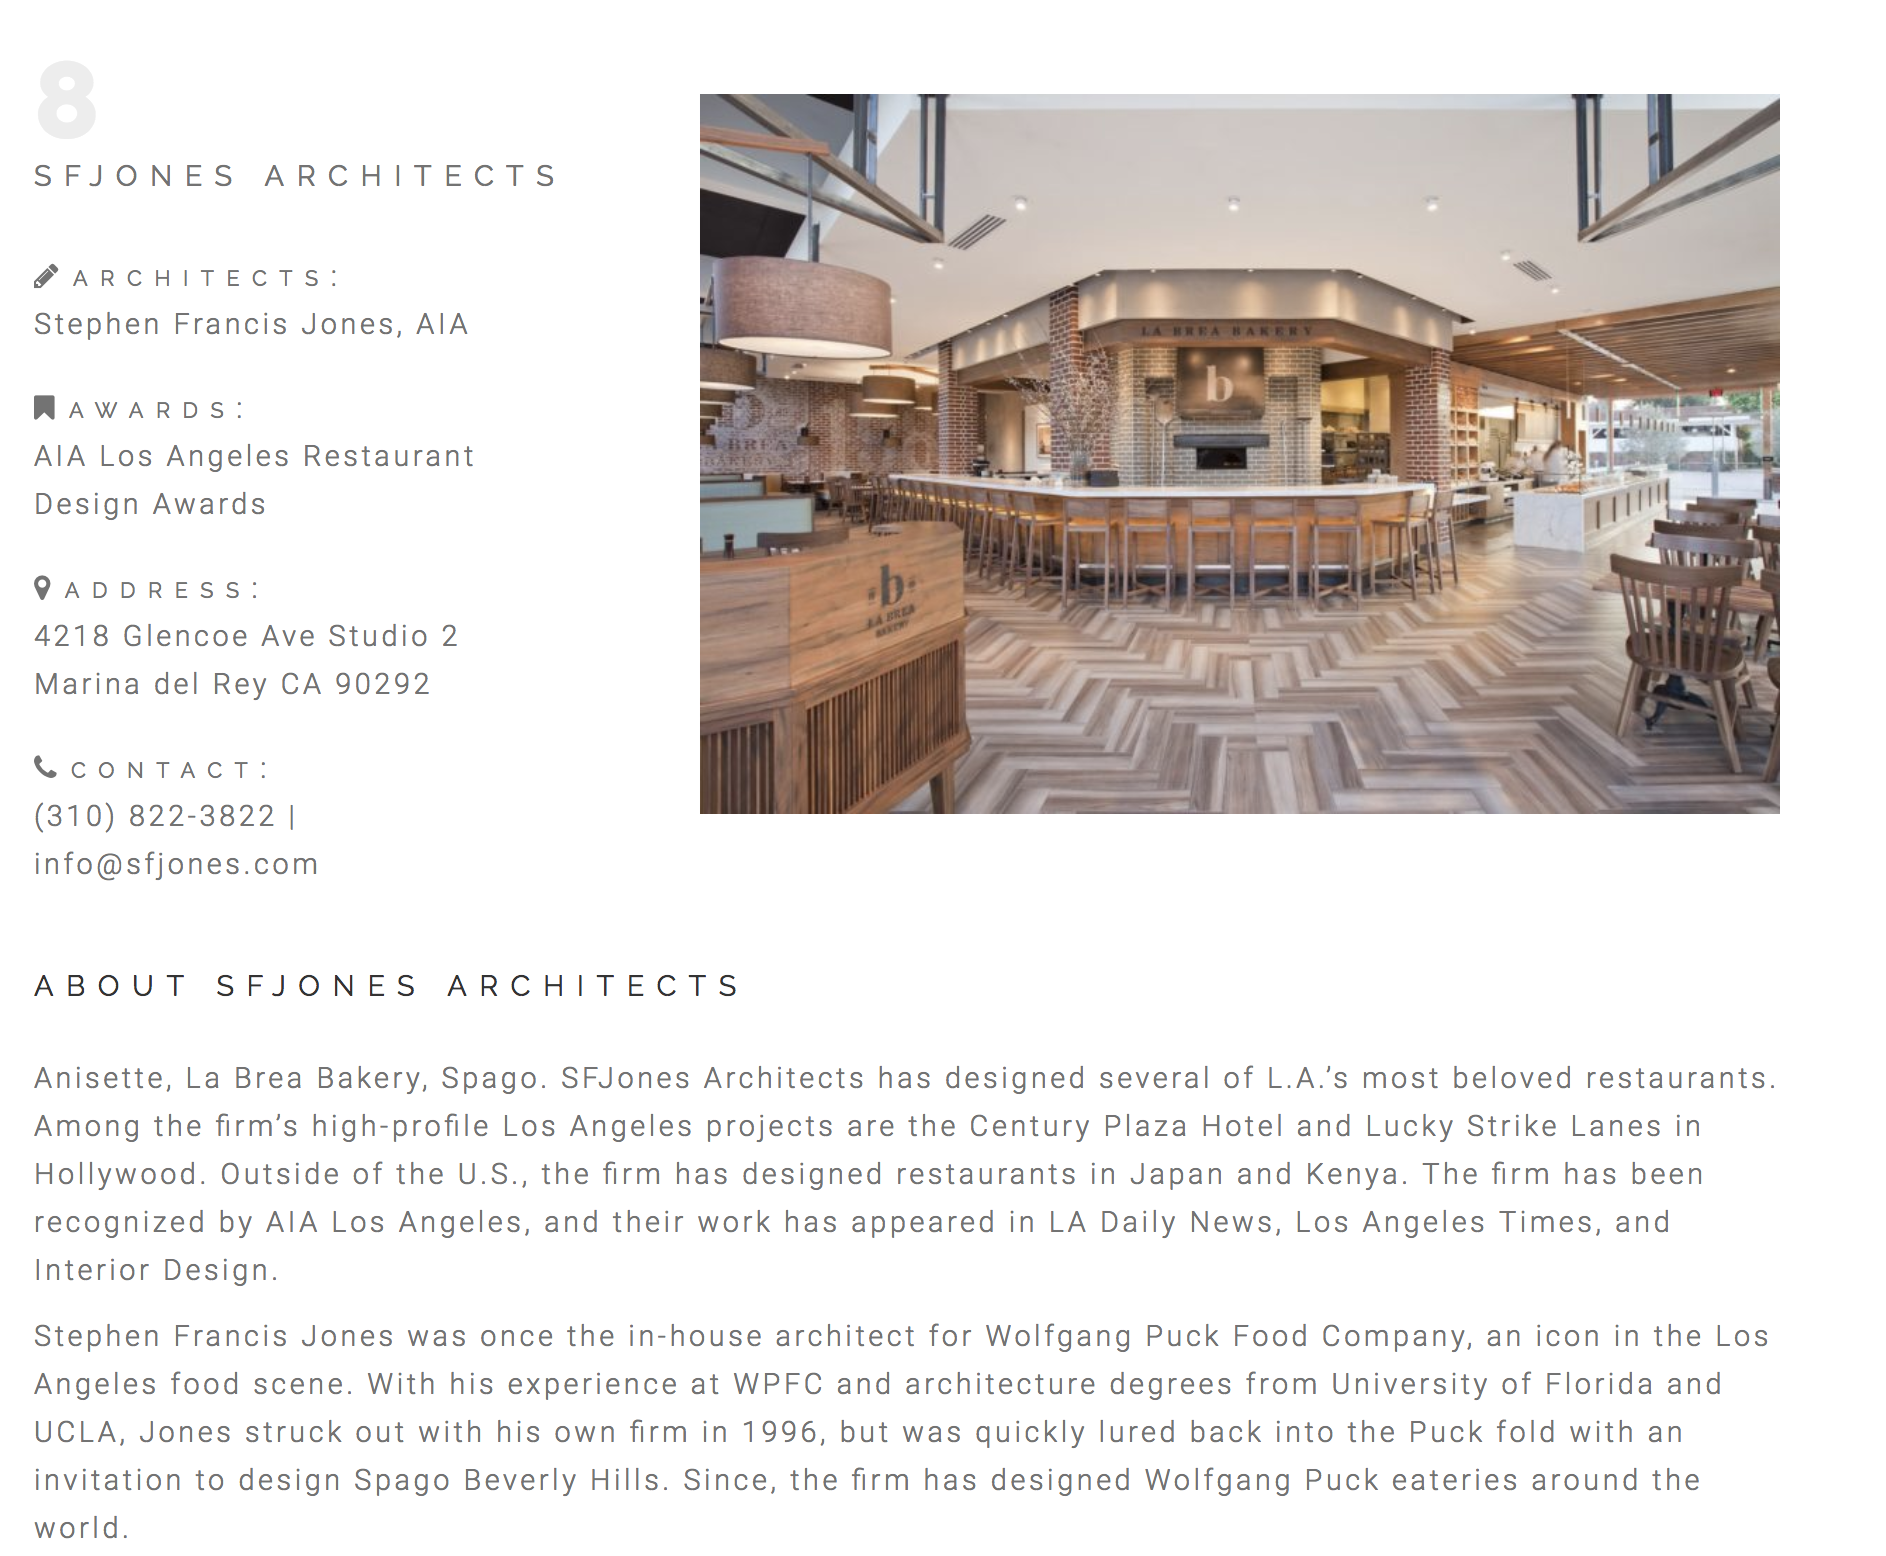 The Best Restaurant Architects In Los Angeles Sfjones Los Angeles Architecture Firm